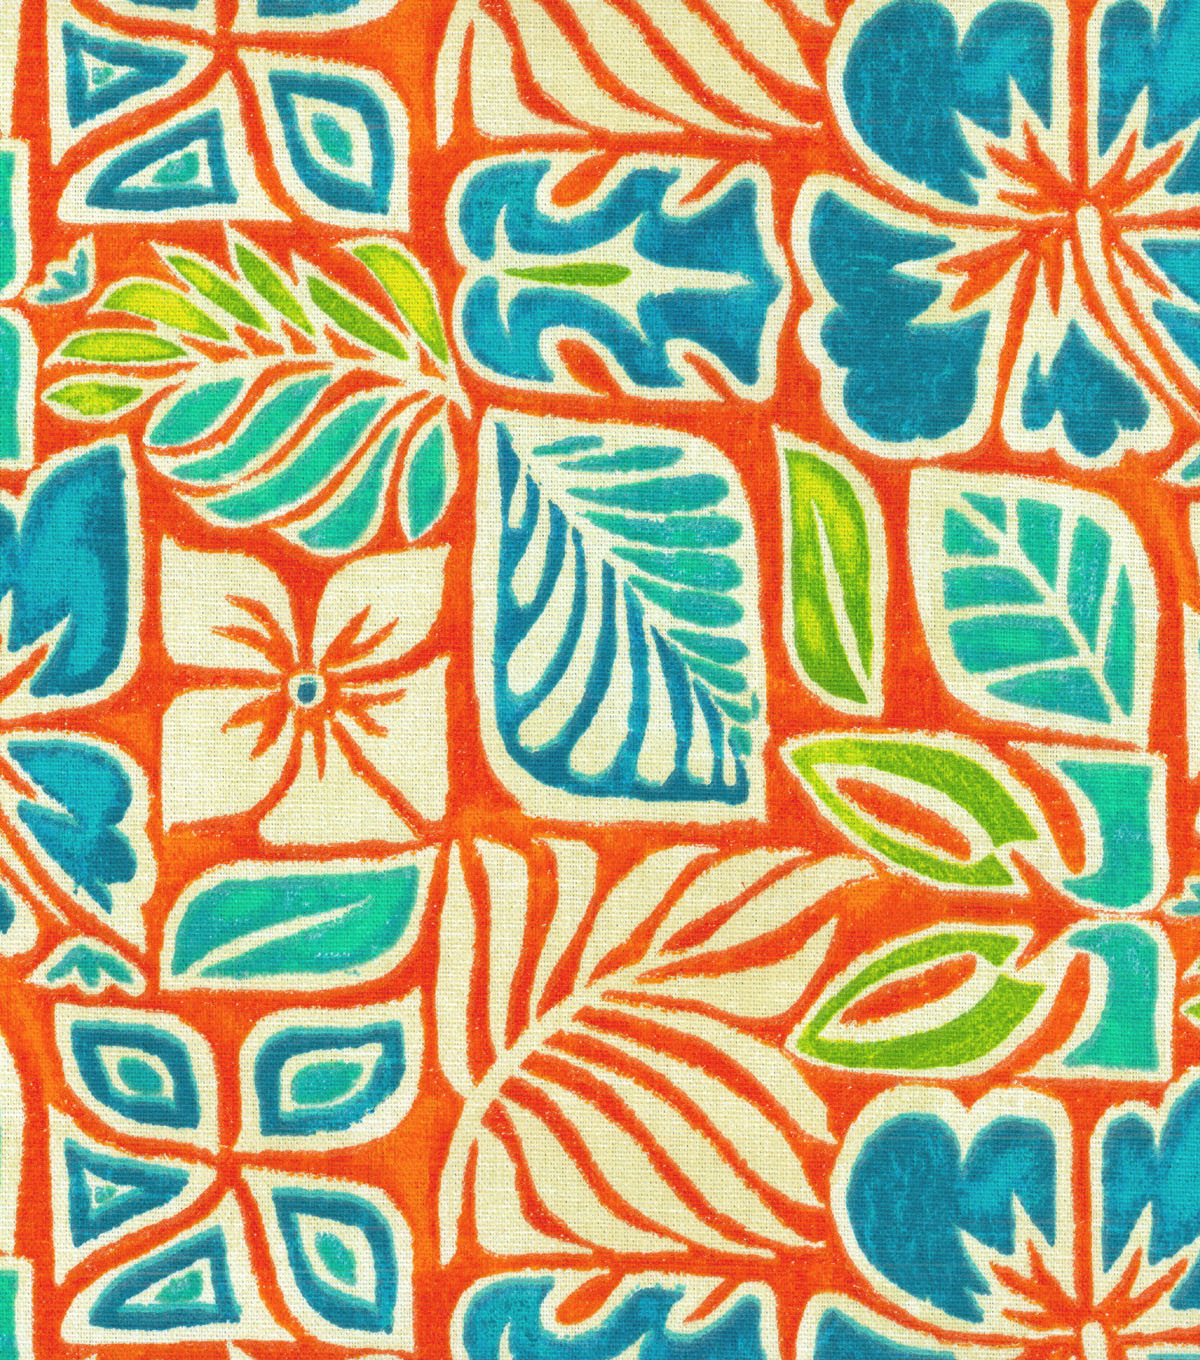 Home Decor 8\u0022x8\u0022 Fabric Swatch-Tommy Bahama Sun Blocks/Coral Reef